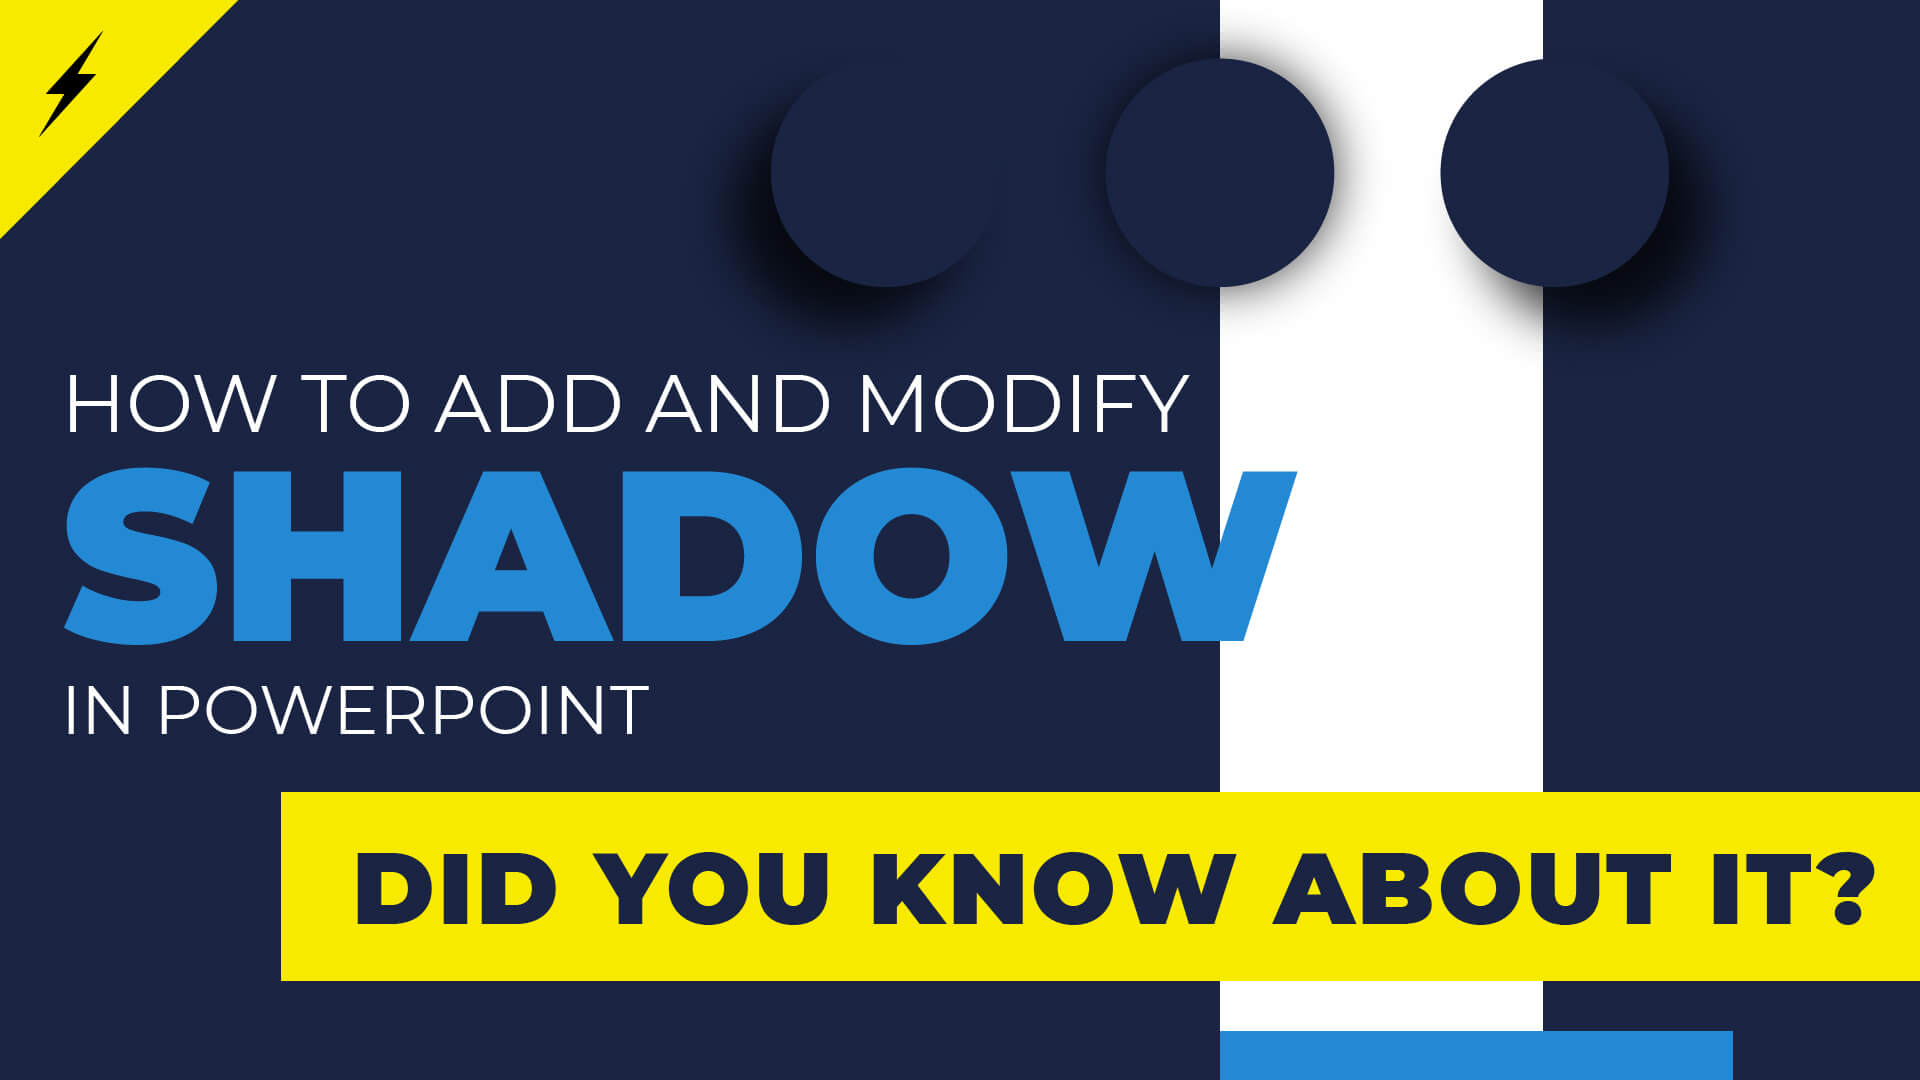 SHADOW in PowerPoint